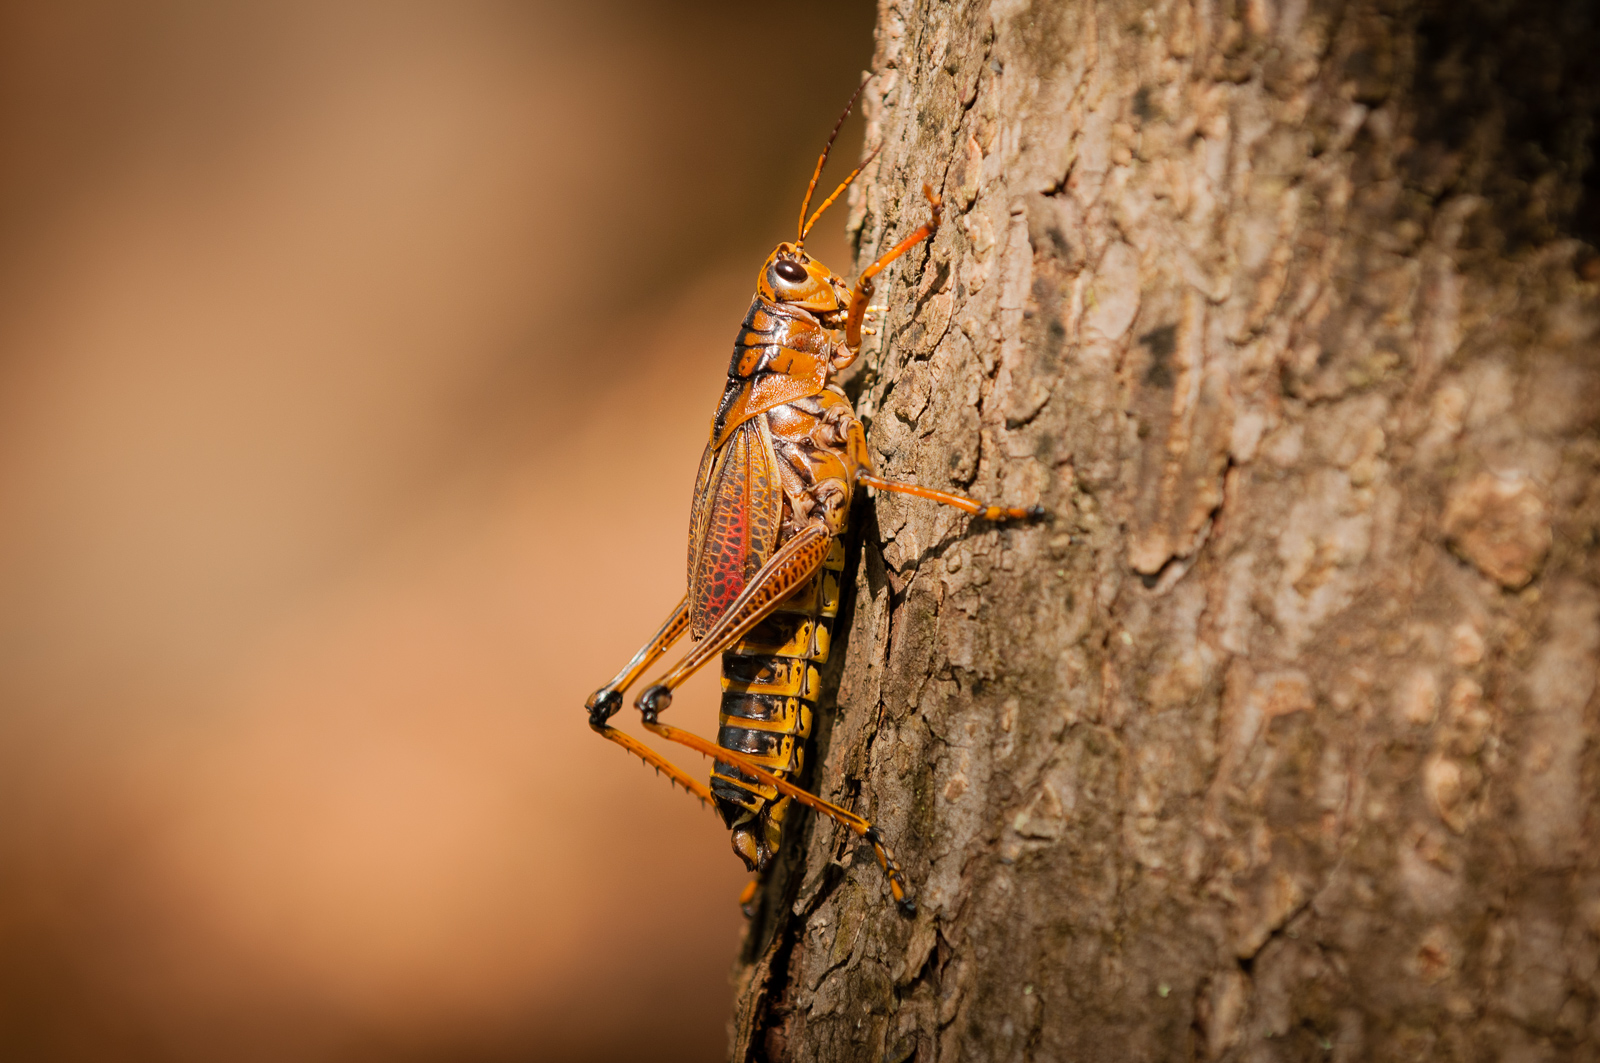 Giant Orange Grasshopper